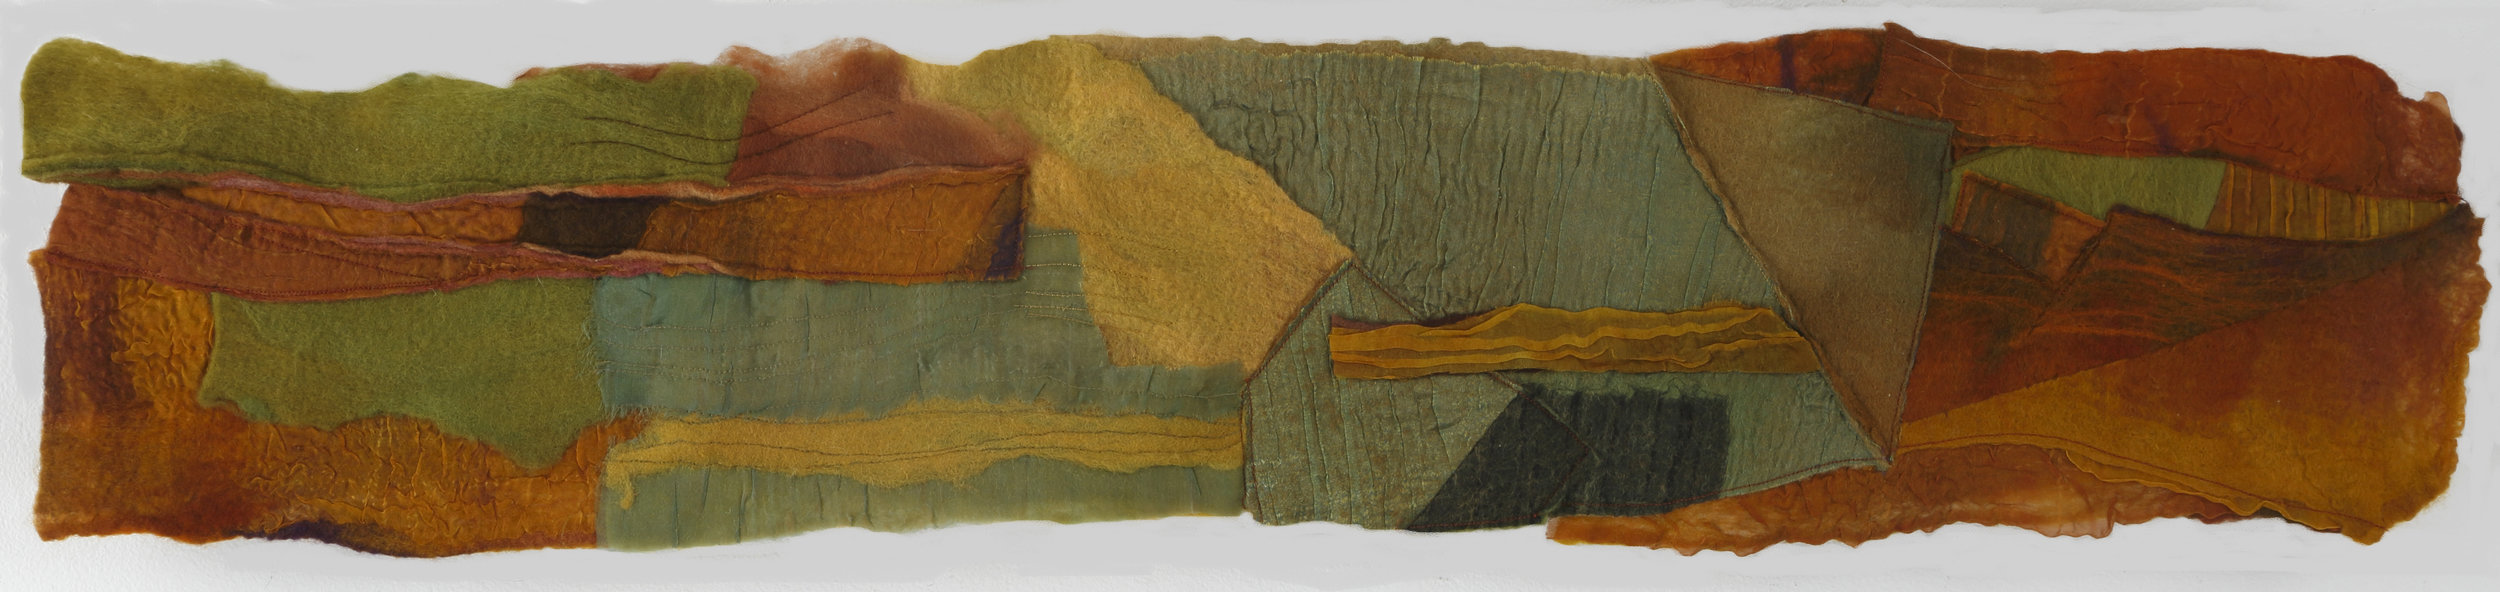 """Bottom Land"" by Vallorie Henderson, 7x35in, hand-dyed and felted Merino wool with silk organza, machine stitching, $575 